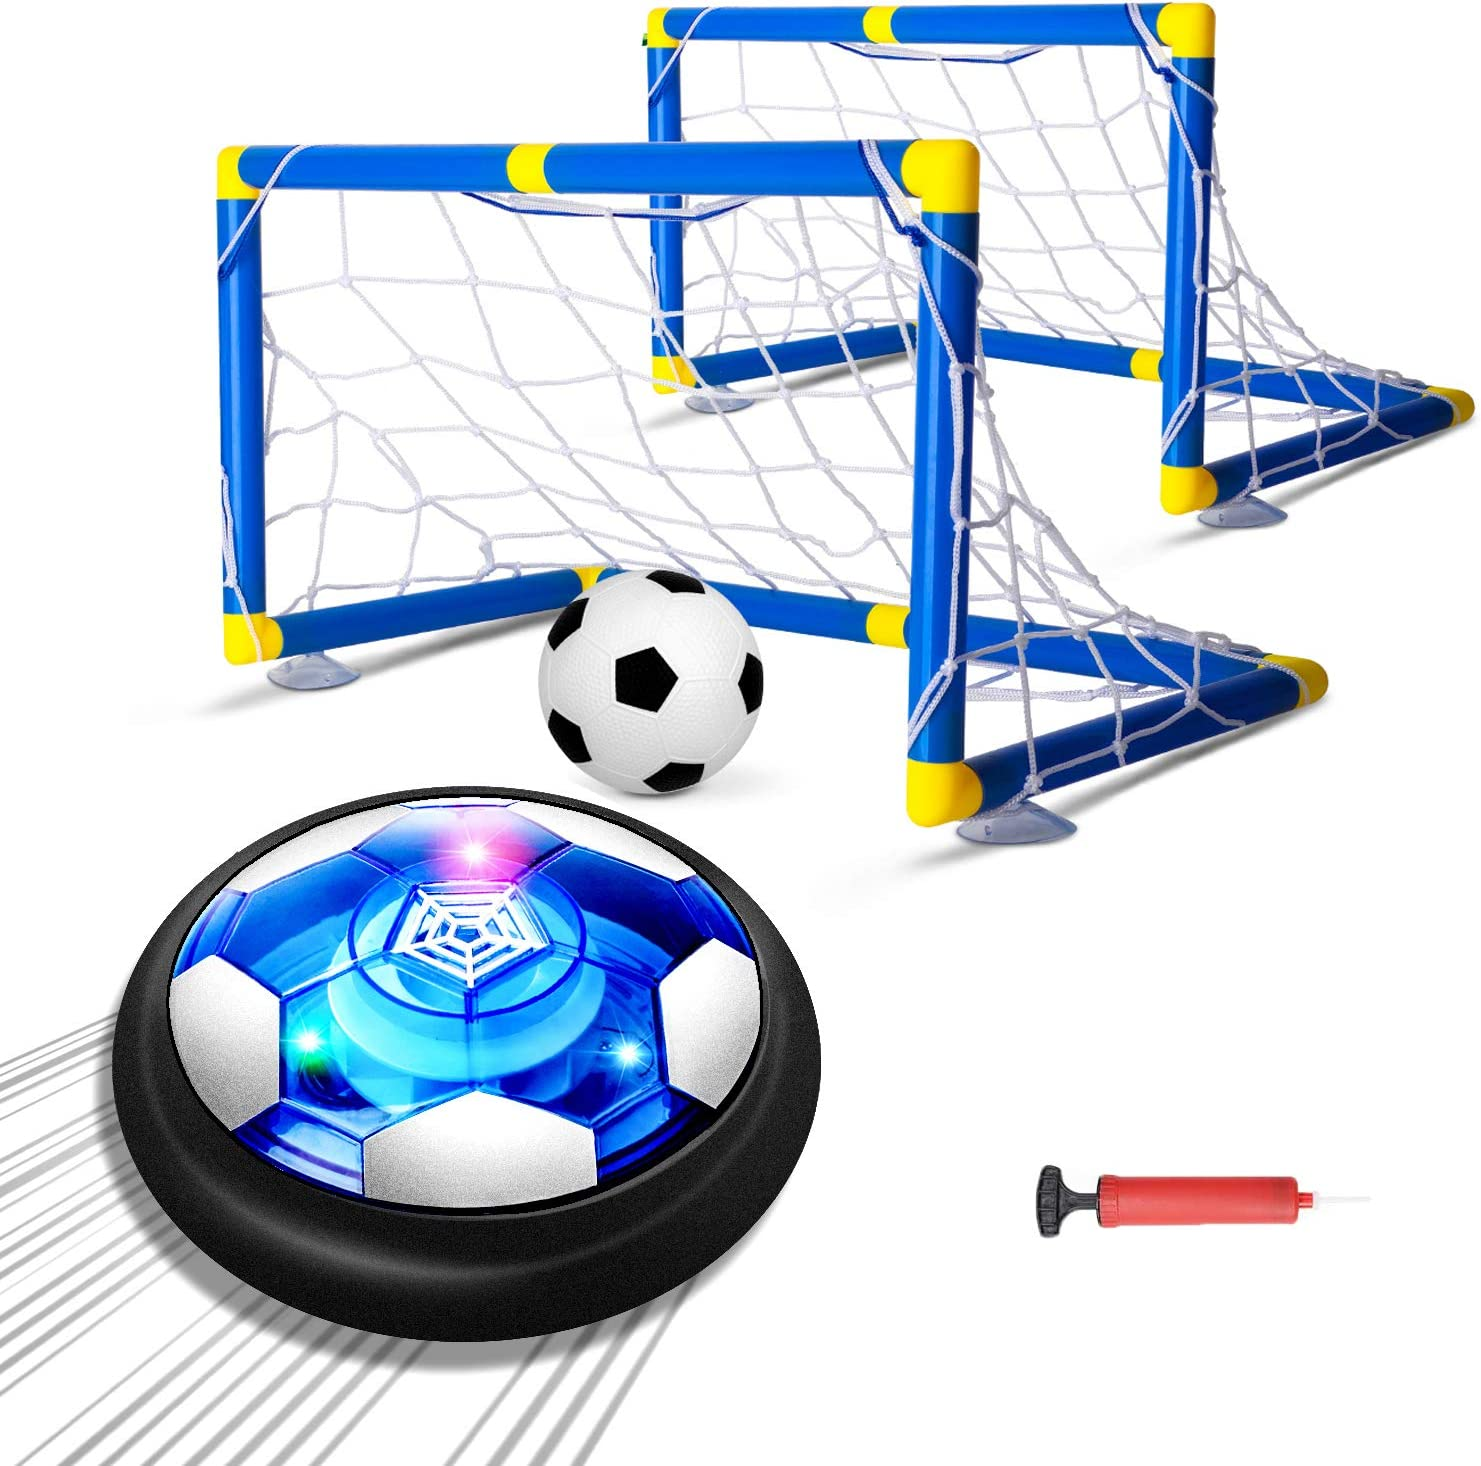 Kids Toys Hover Soccer Ball Set with 2 Goals, Air Soccer with LED Light, USB Rechargeable Floating Soccer Ball with Foam Bumper for Indoor Outdoor Sports Ball Game, Football Toy for Boy Girl Best Gift: Sports & Outdoors